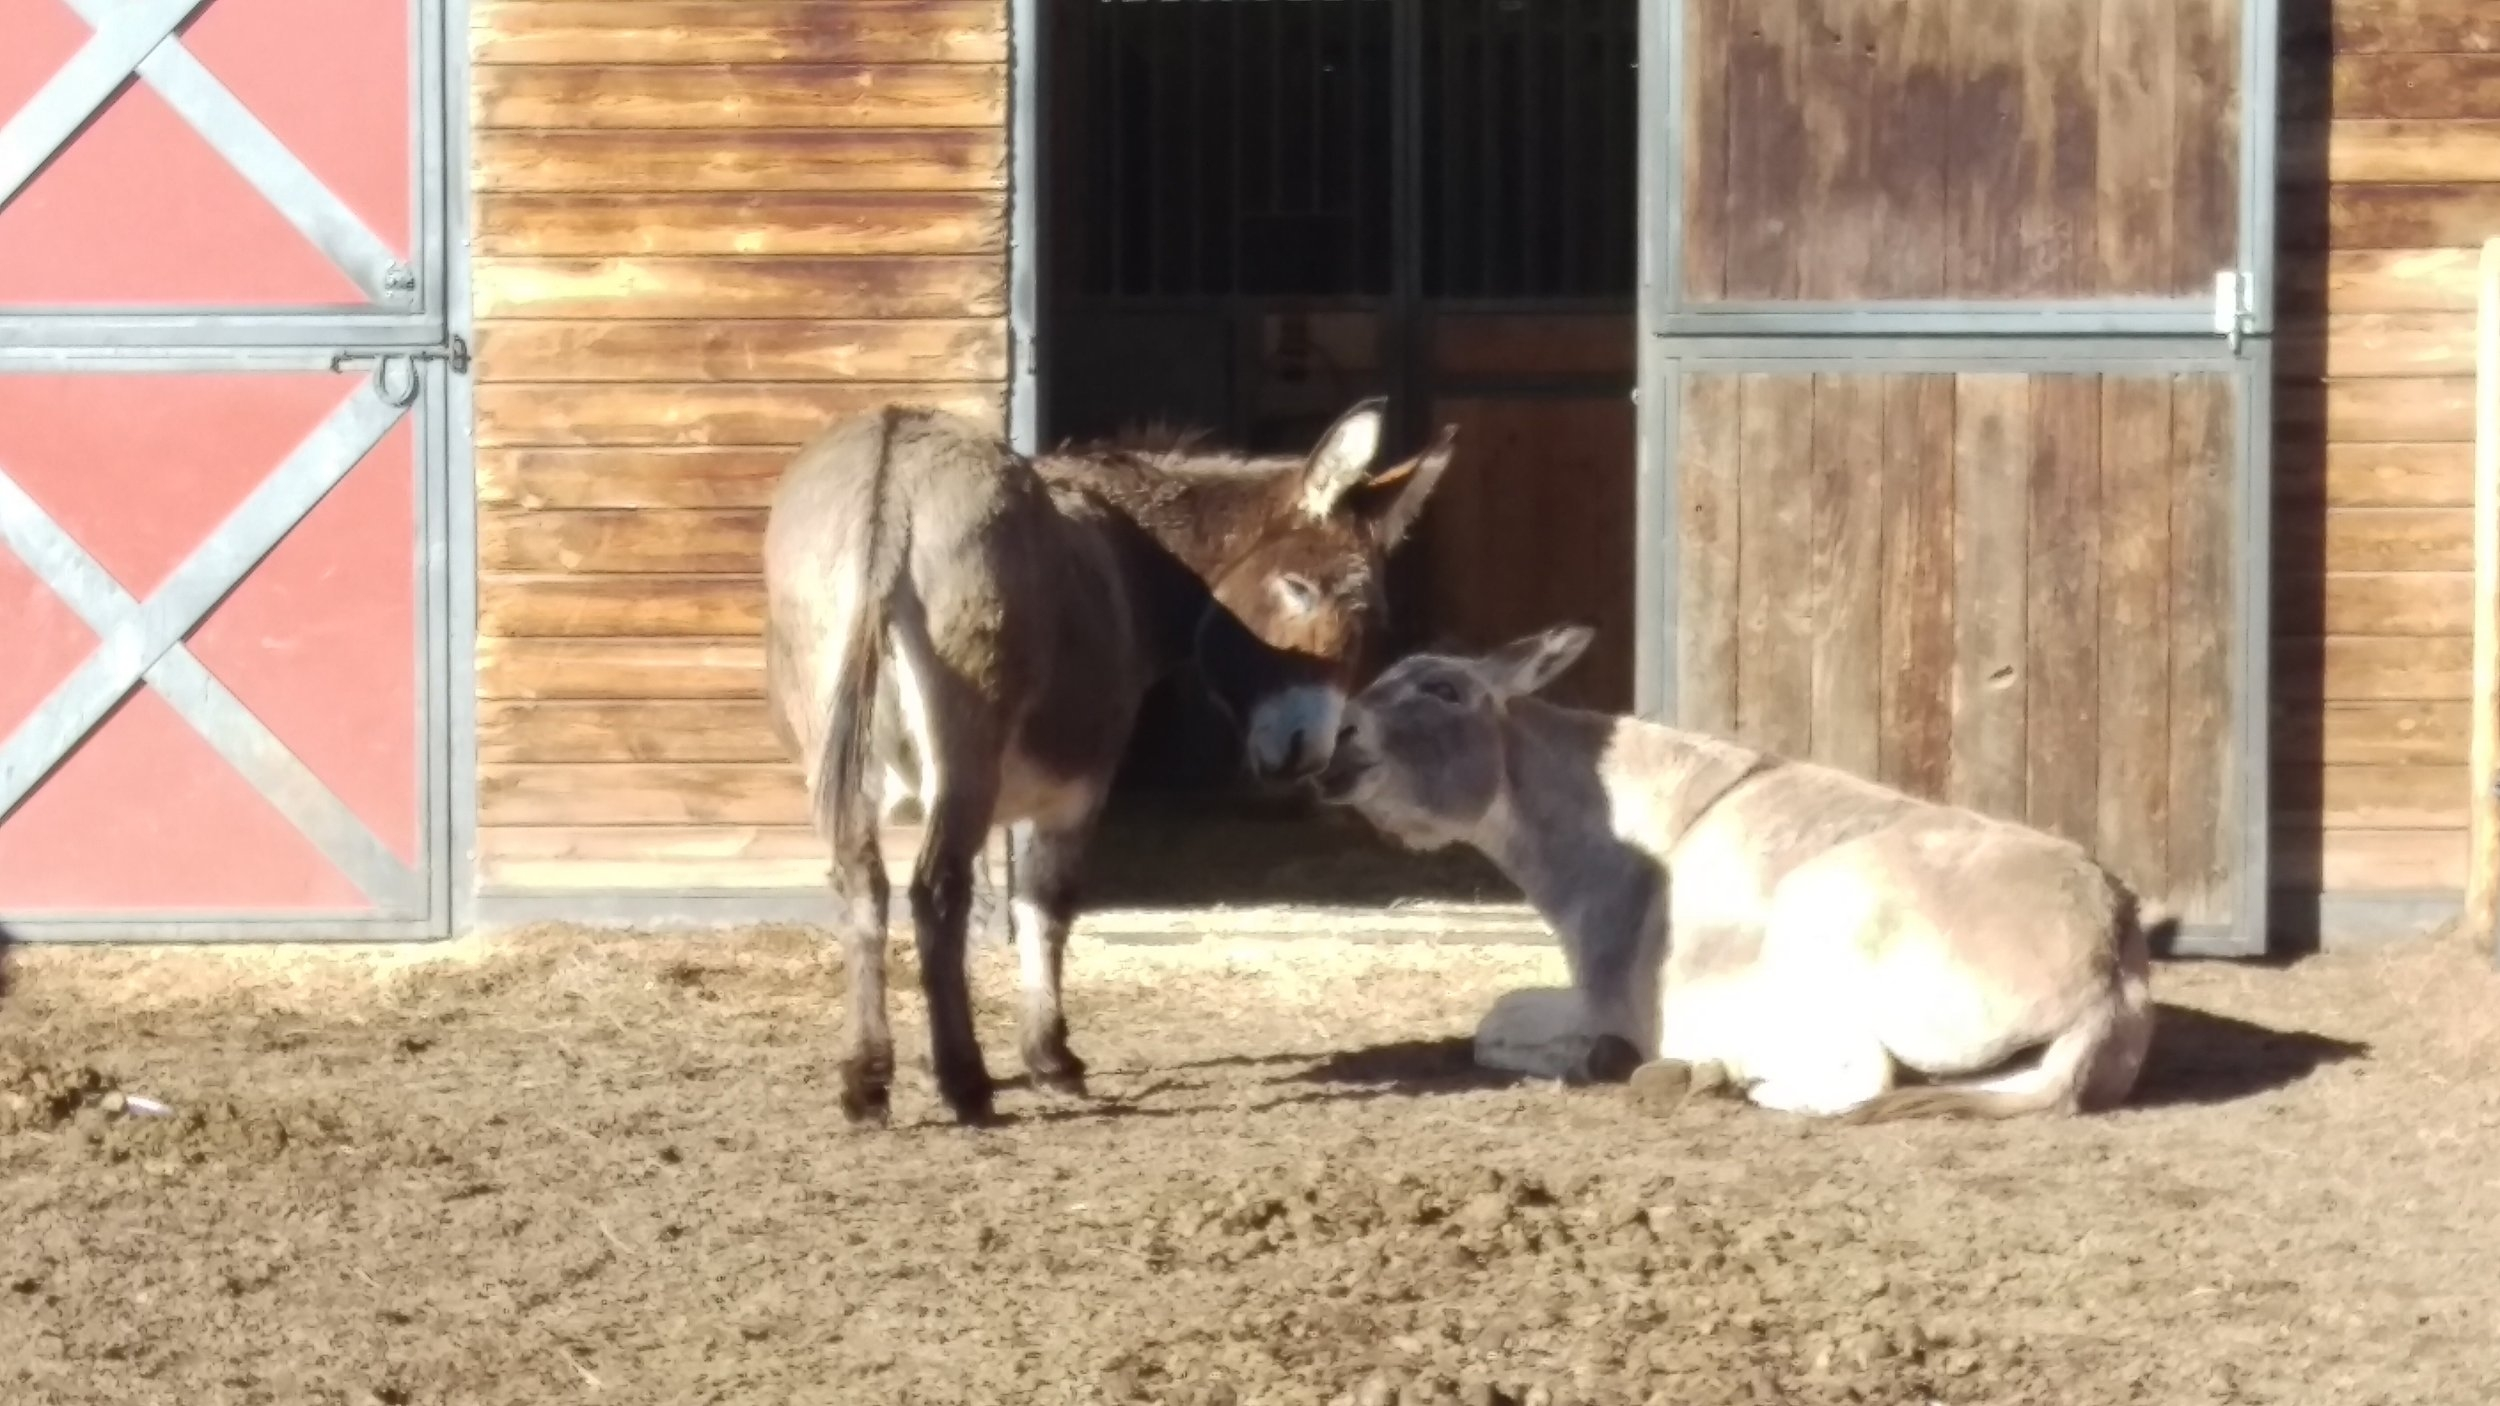 Jenivieve and Gatspy - Gatspy and Jenivieve are two donkeys who love spending their days here at the ranch lounging in the sun and enjoying life. They currently live at the Little Barn and can occasionally be heard 'hee-hawing' or braying around dinner time.